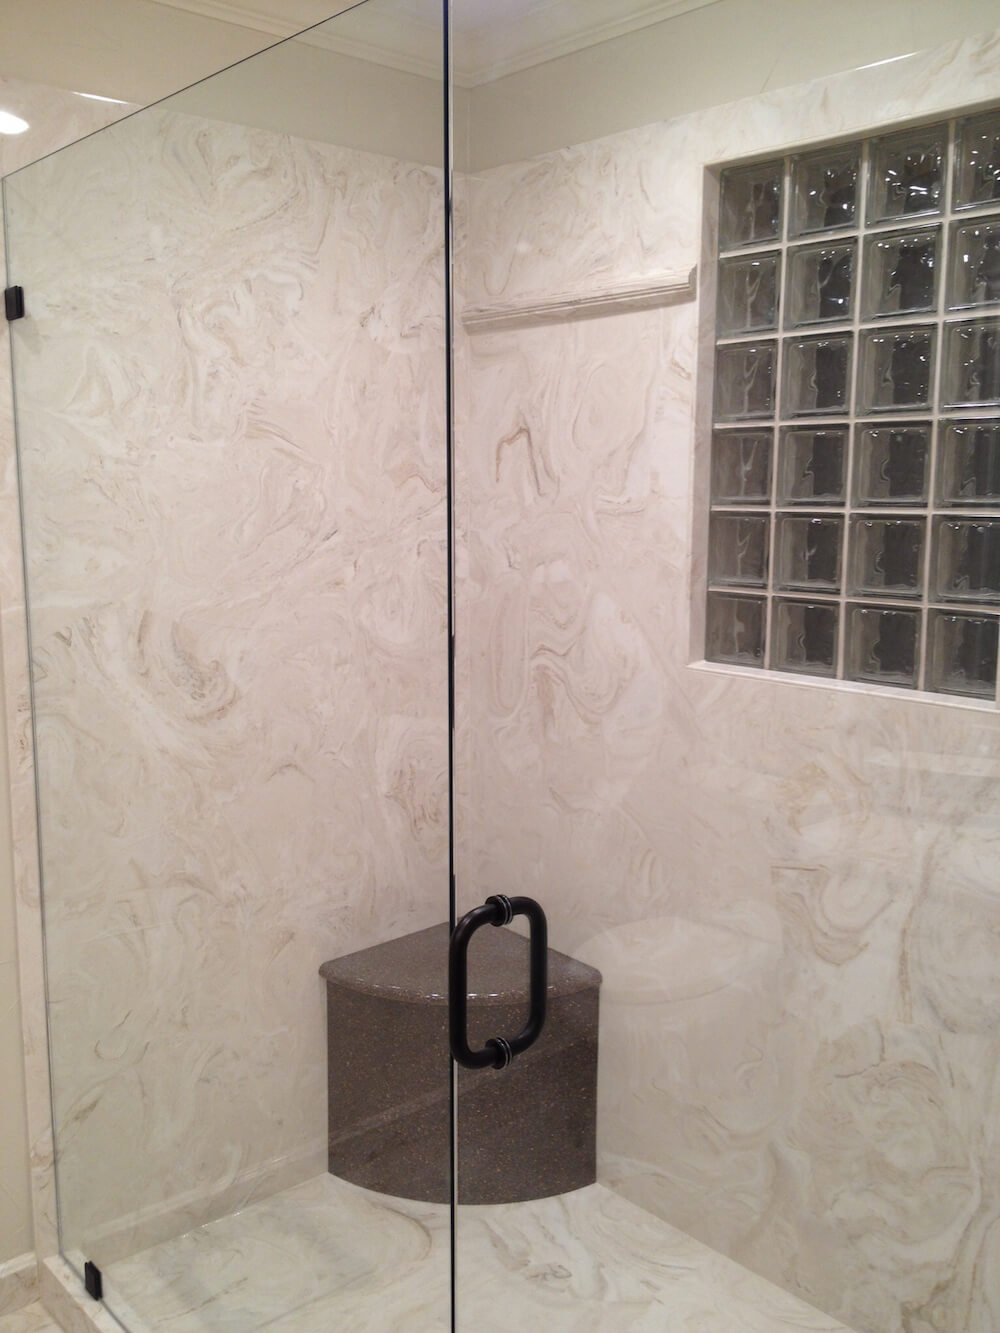 Cultured Marble Shower Walls Cost Marble Shower Price - Fake marble shower walls